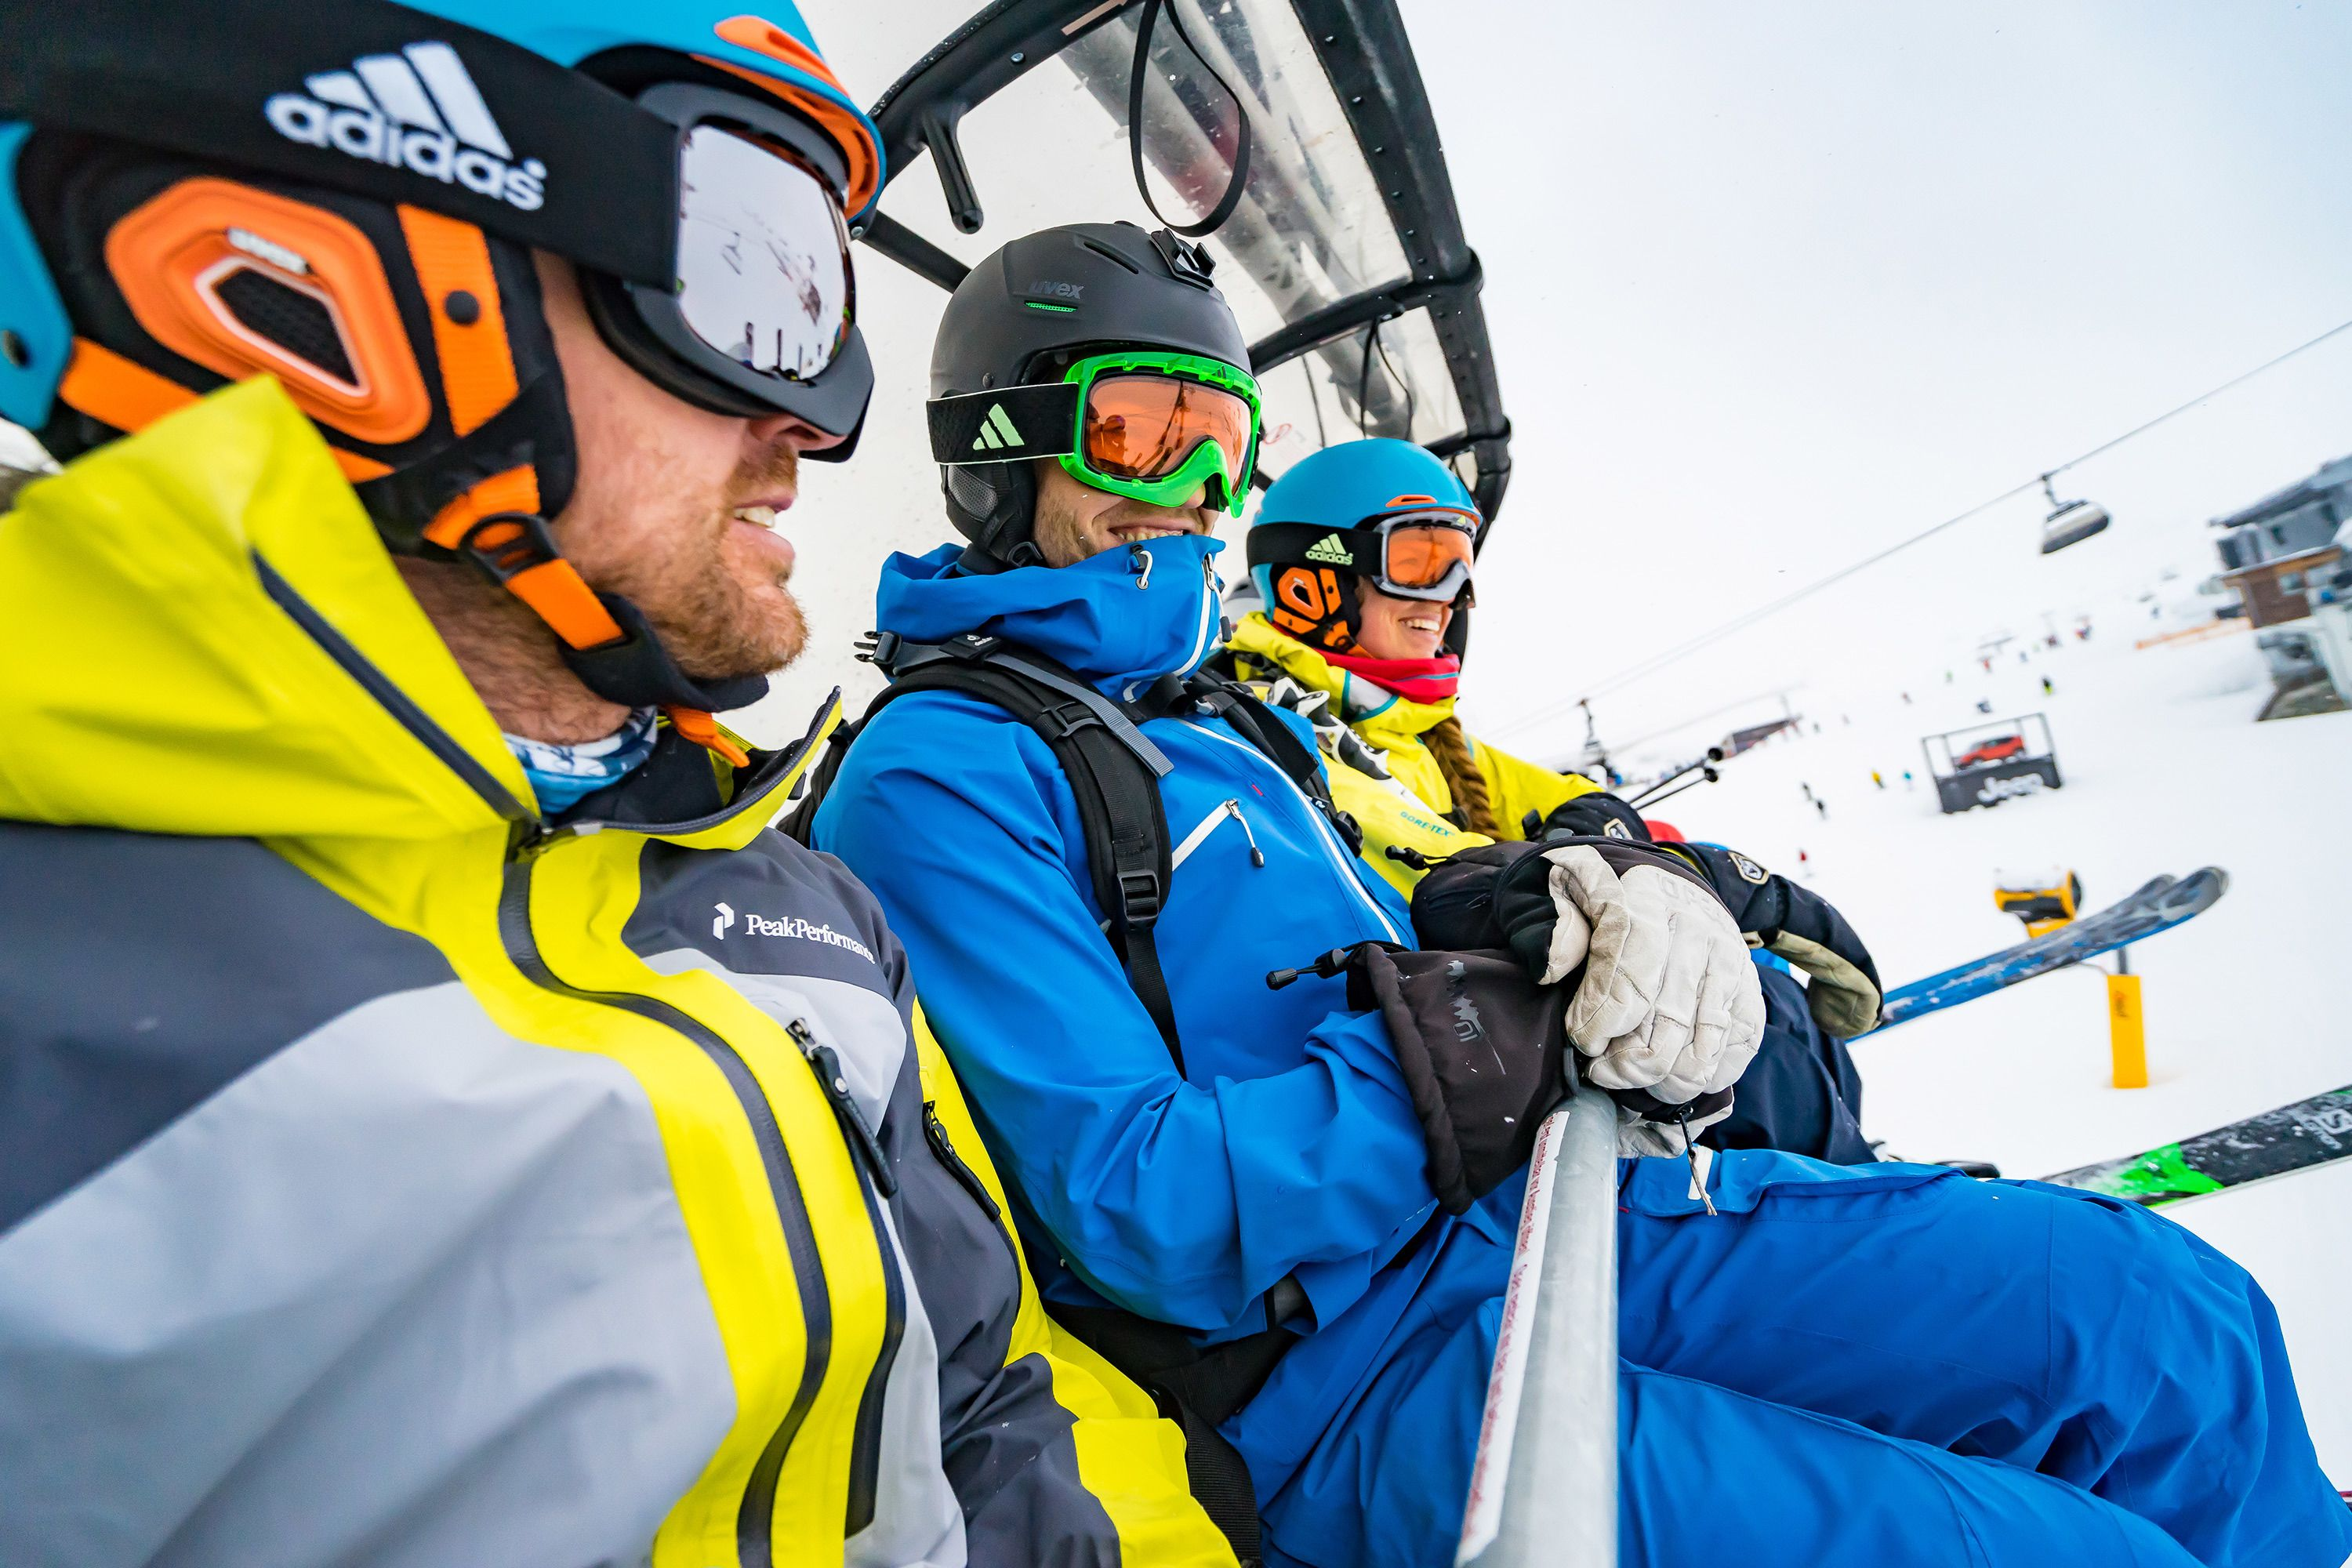 Kunnen we in 2020-2021 op wintersport met corona? (update)